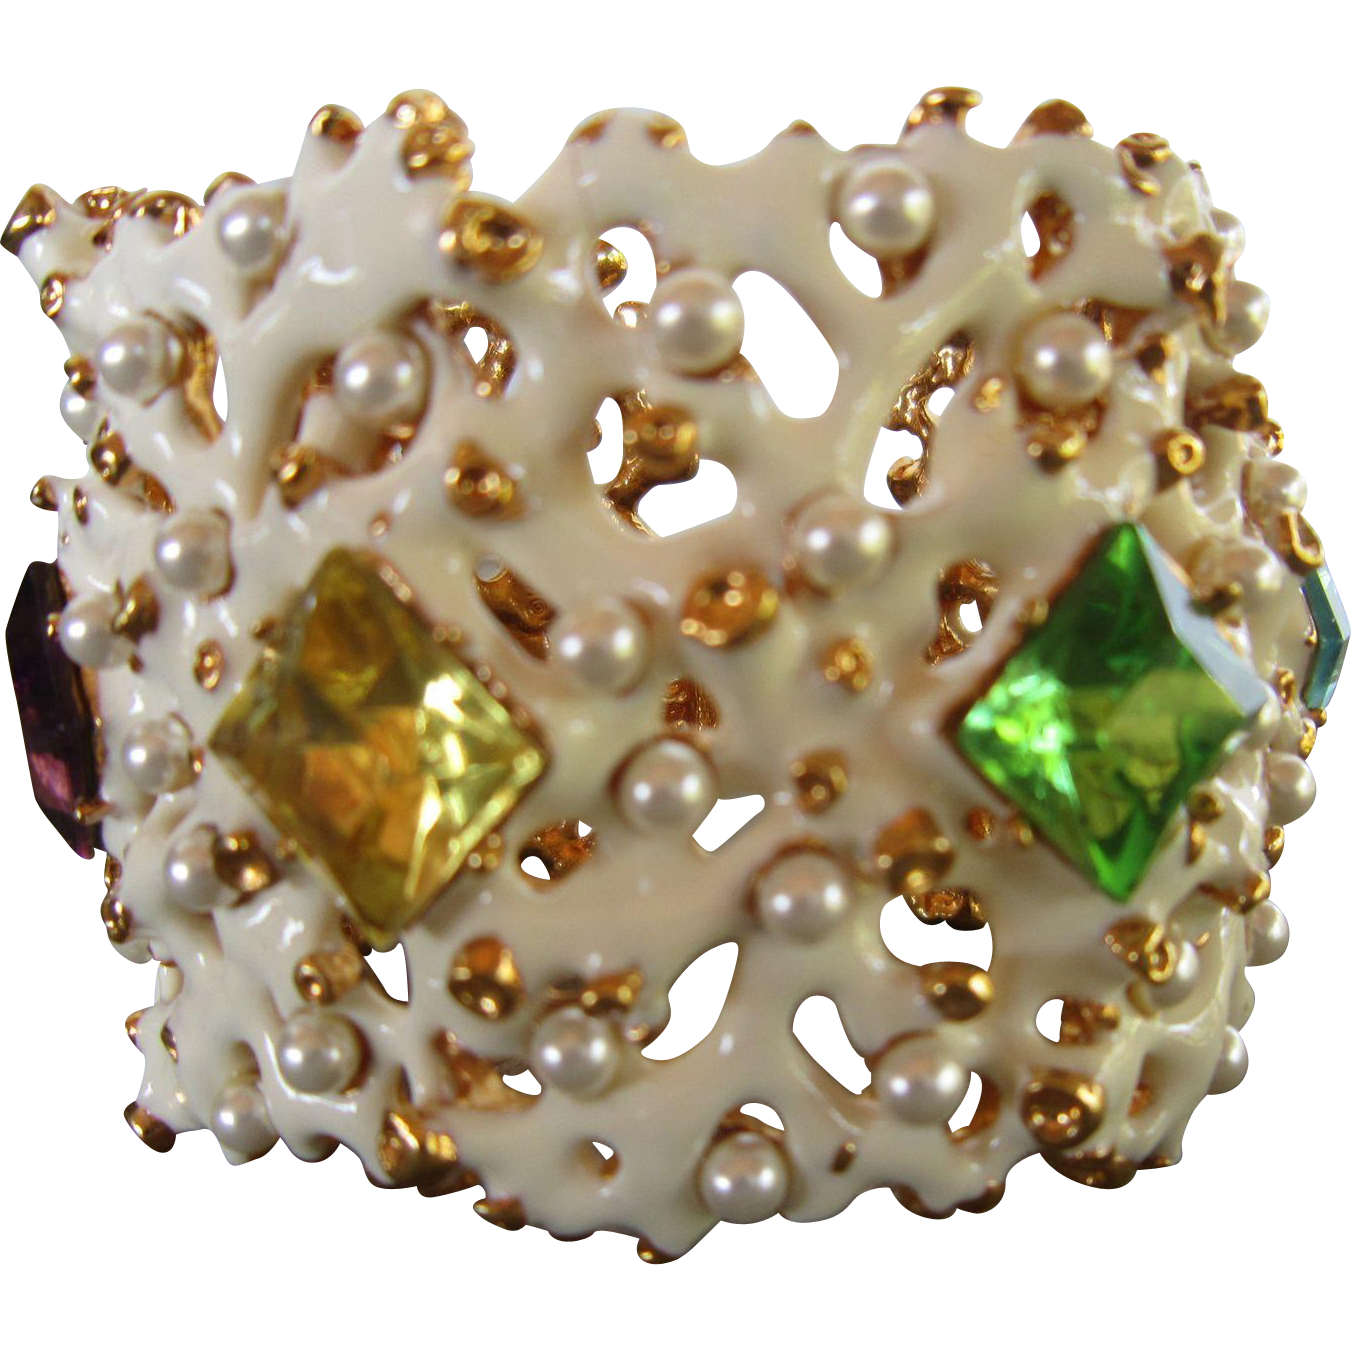 Kenneth Jay Lane Hinged Bracelet with White Enamel Coral Shapes, Large Glass Stones, Faux Pearls and Gold Metal Beads